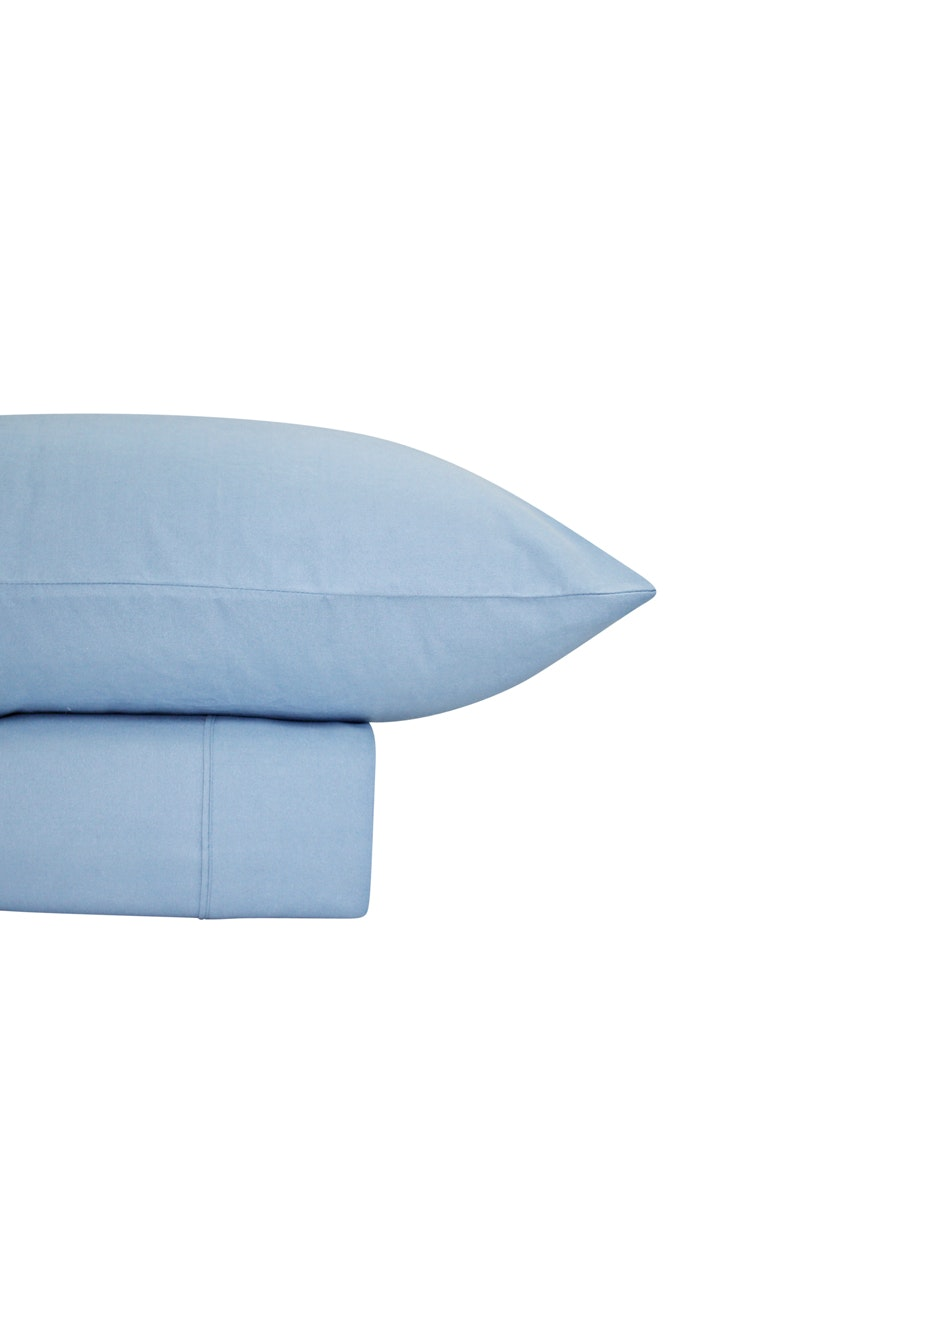 Thermal Flannel Sheet Sets - Bay Blue - Queen Bed